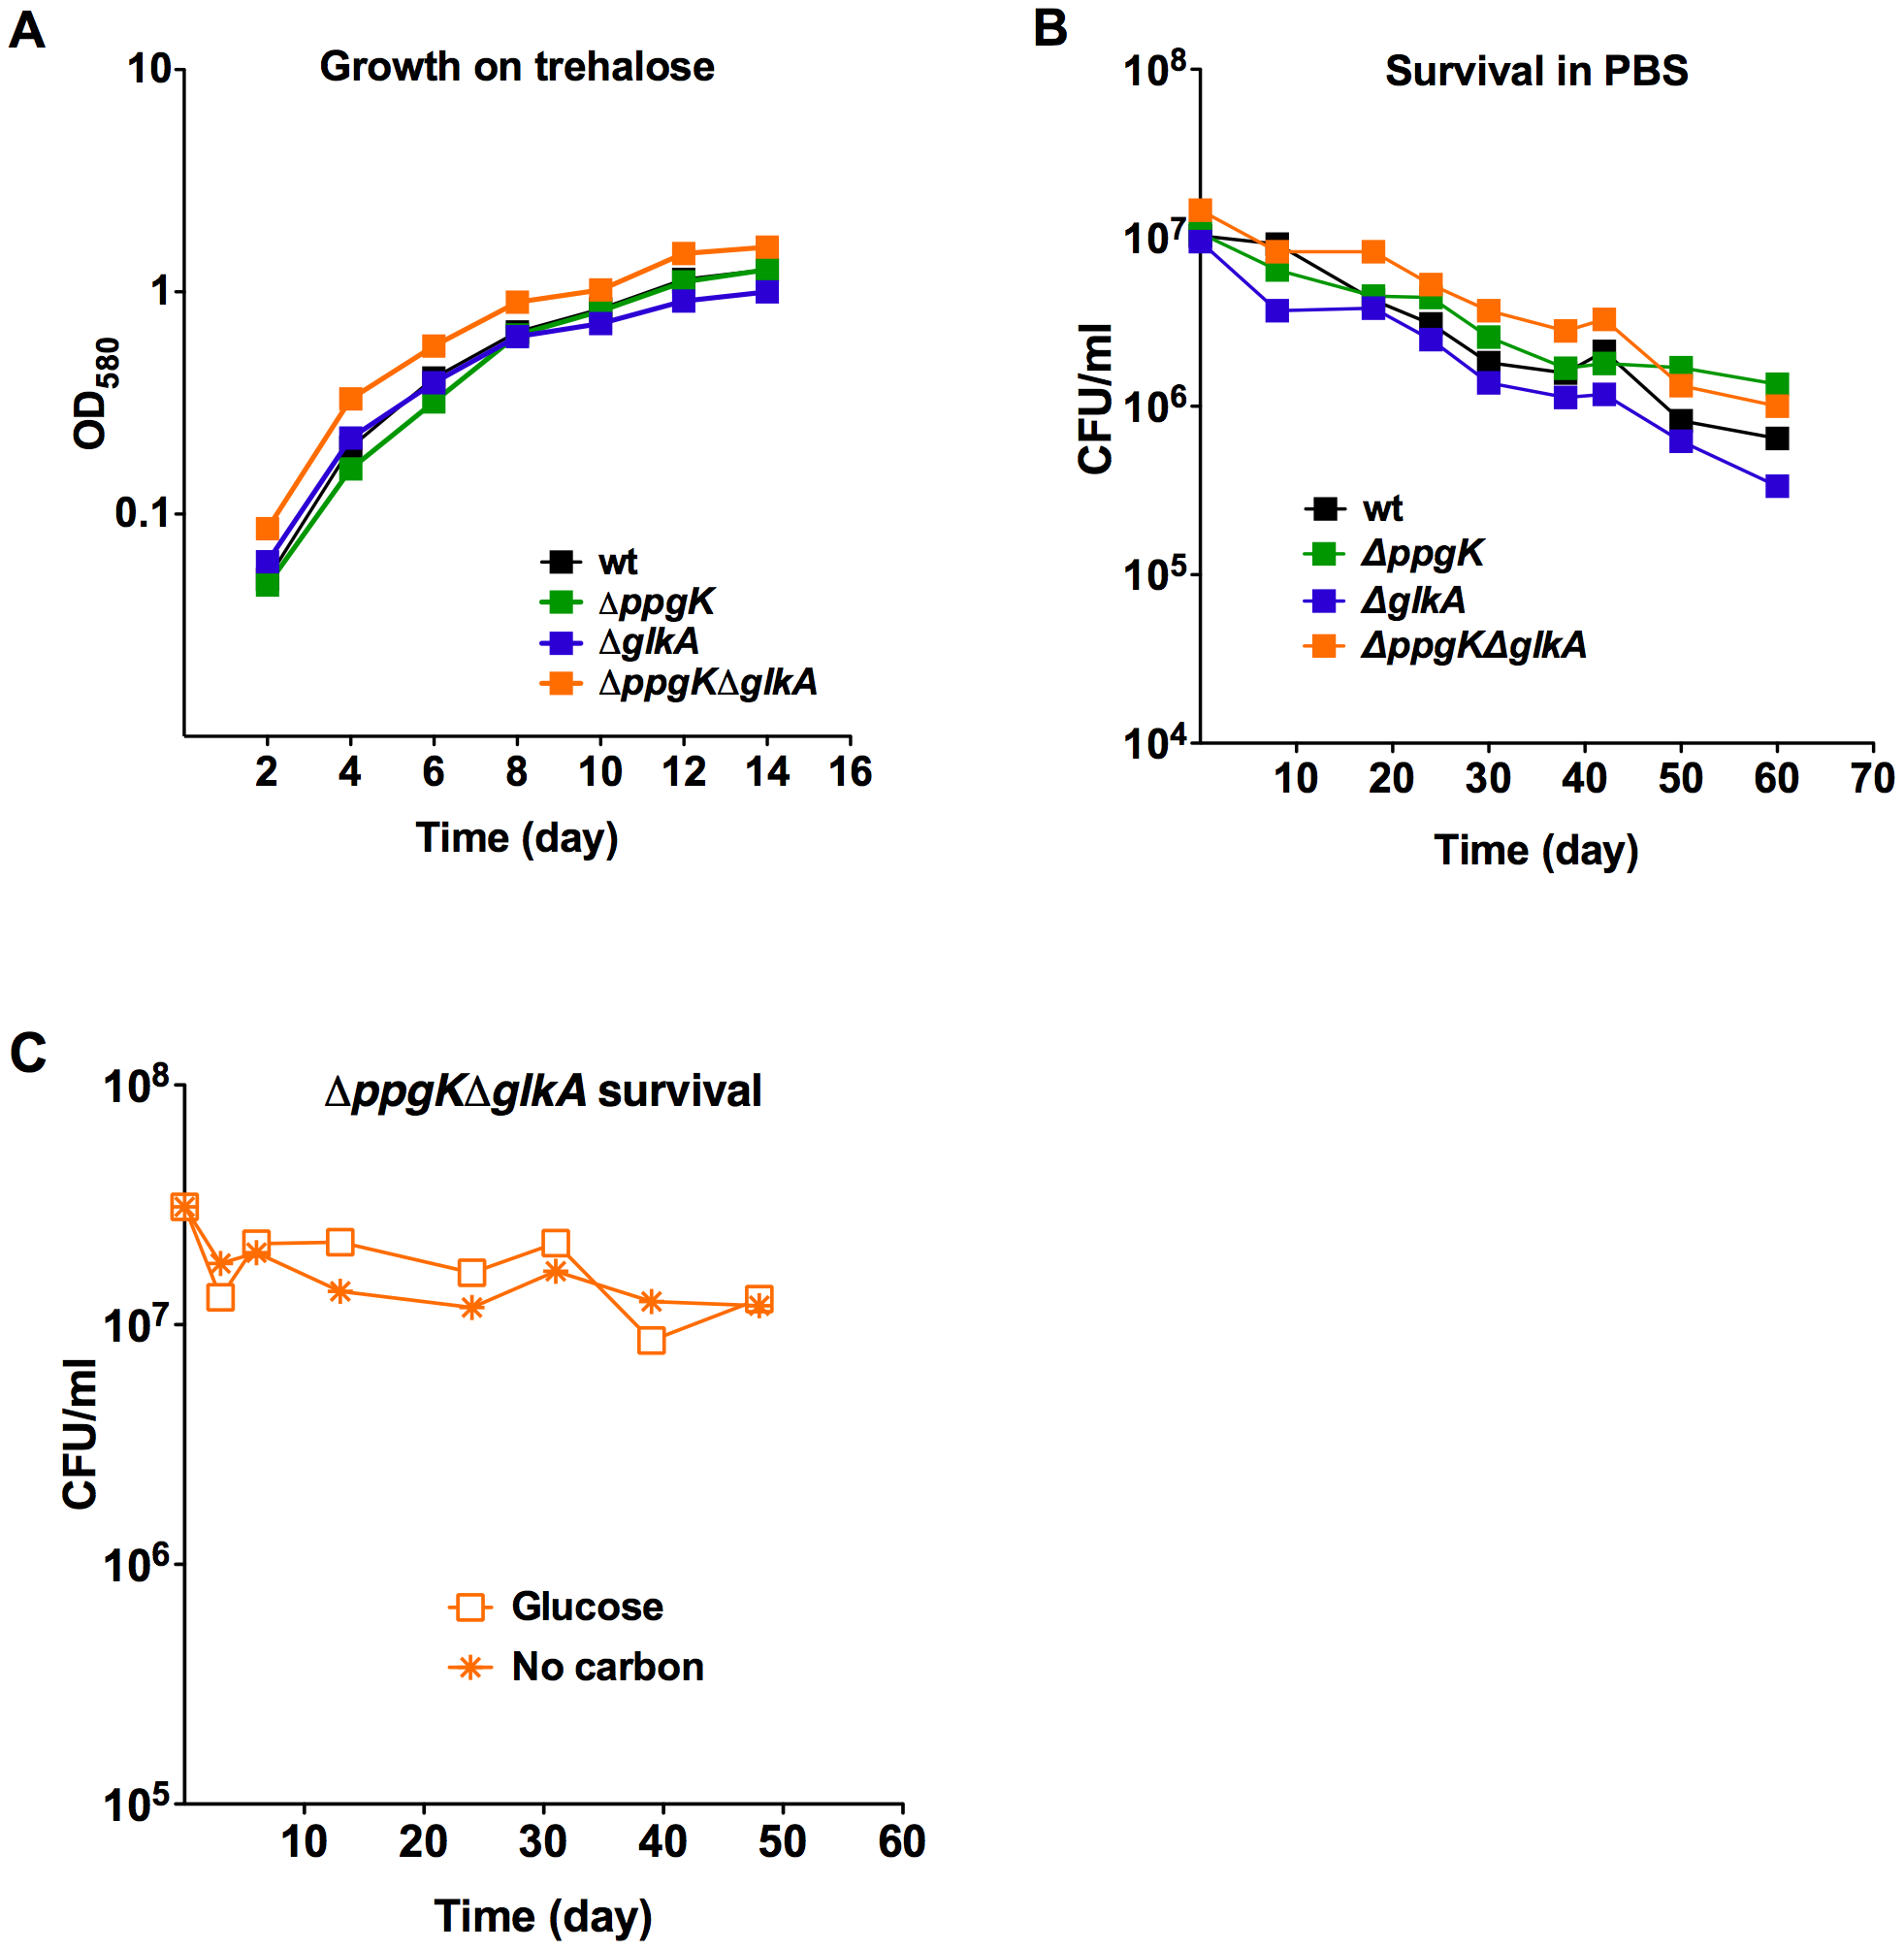 Gluokinases are dispensable for trehalose metabolism and survival during starvation.